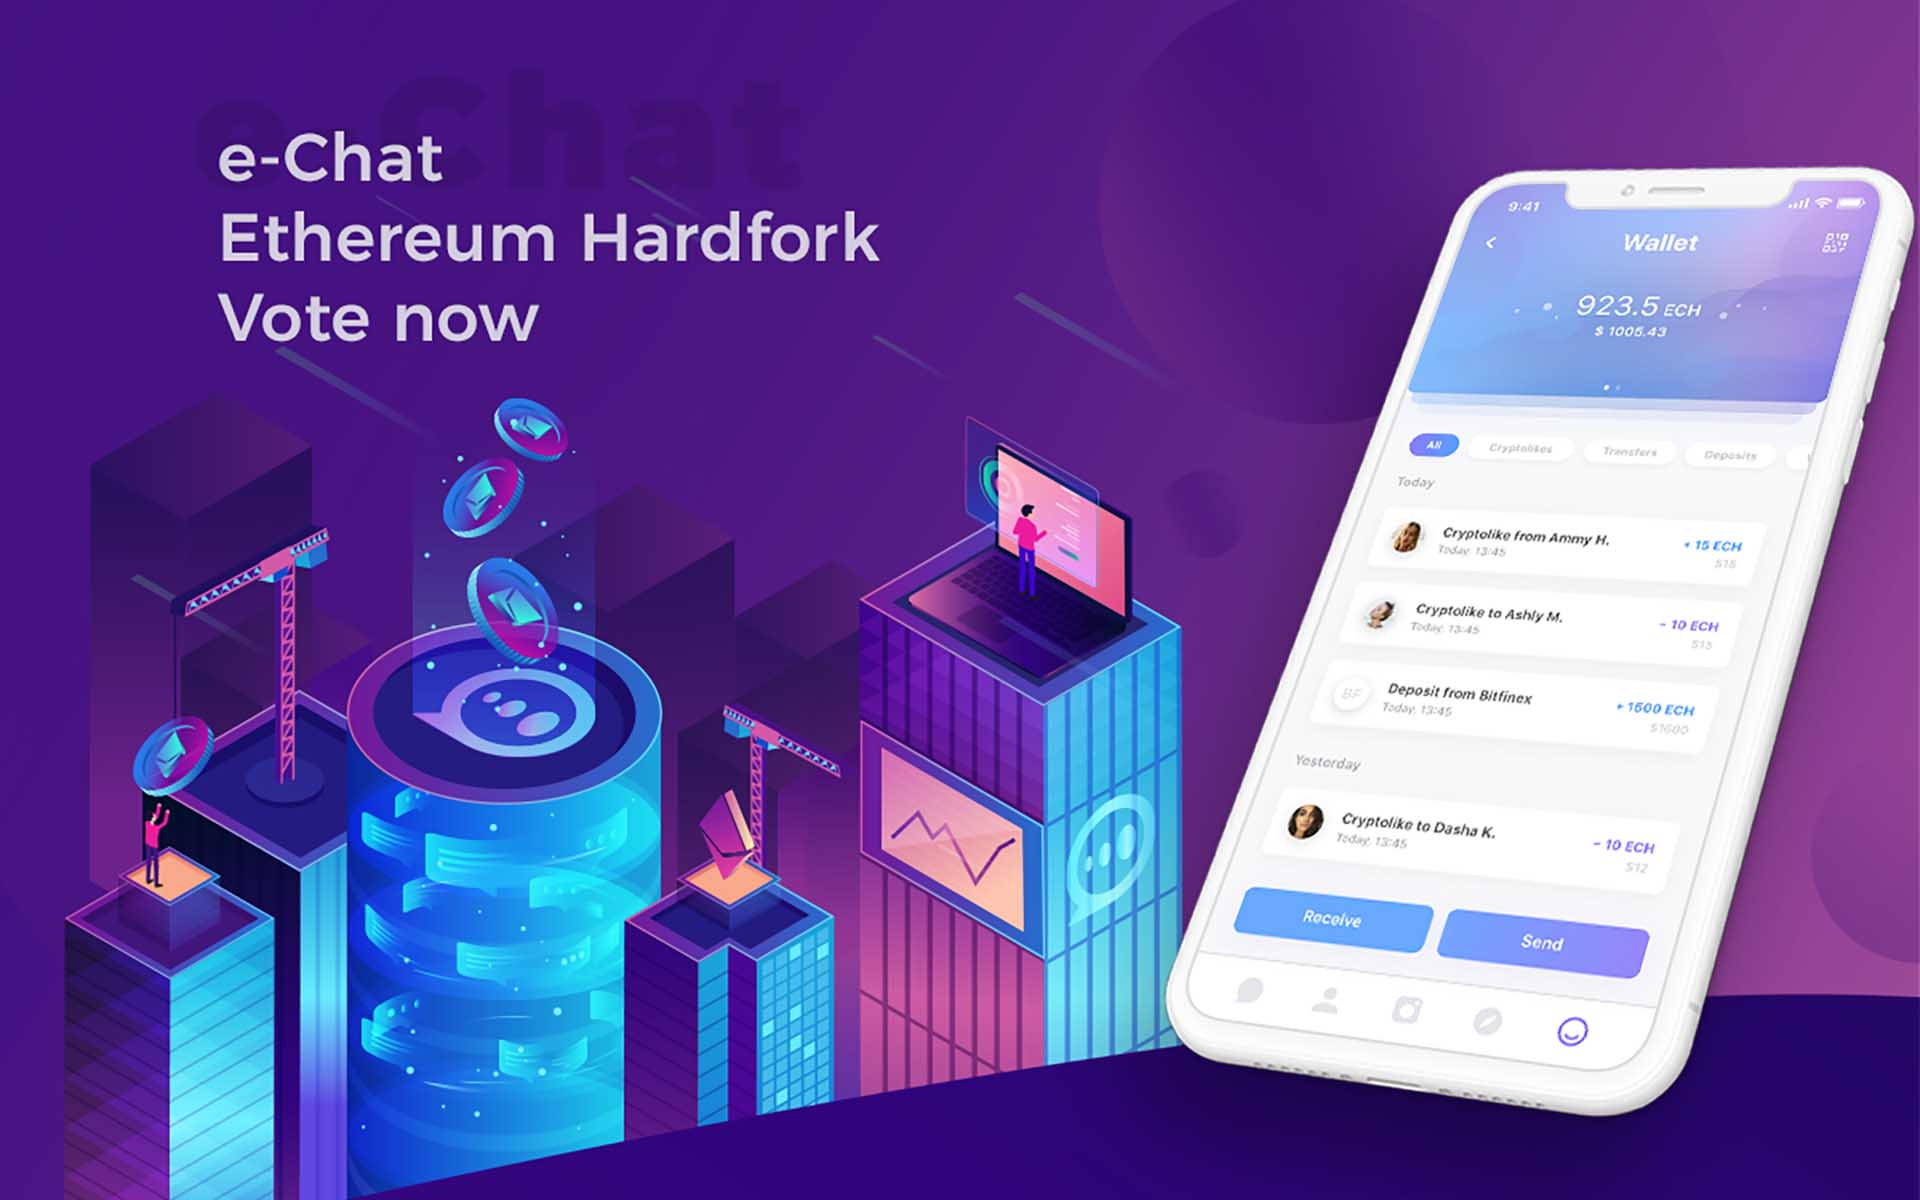 e-Chat can conduct Ethereum Hardfork after the ICO